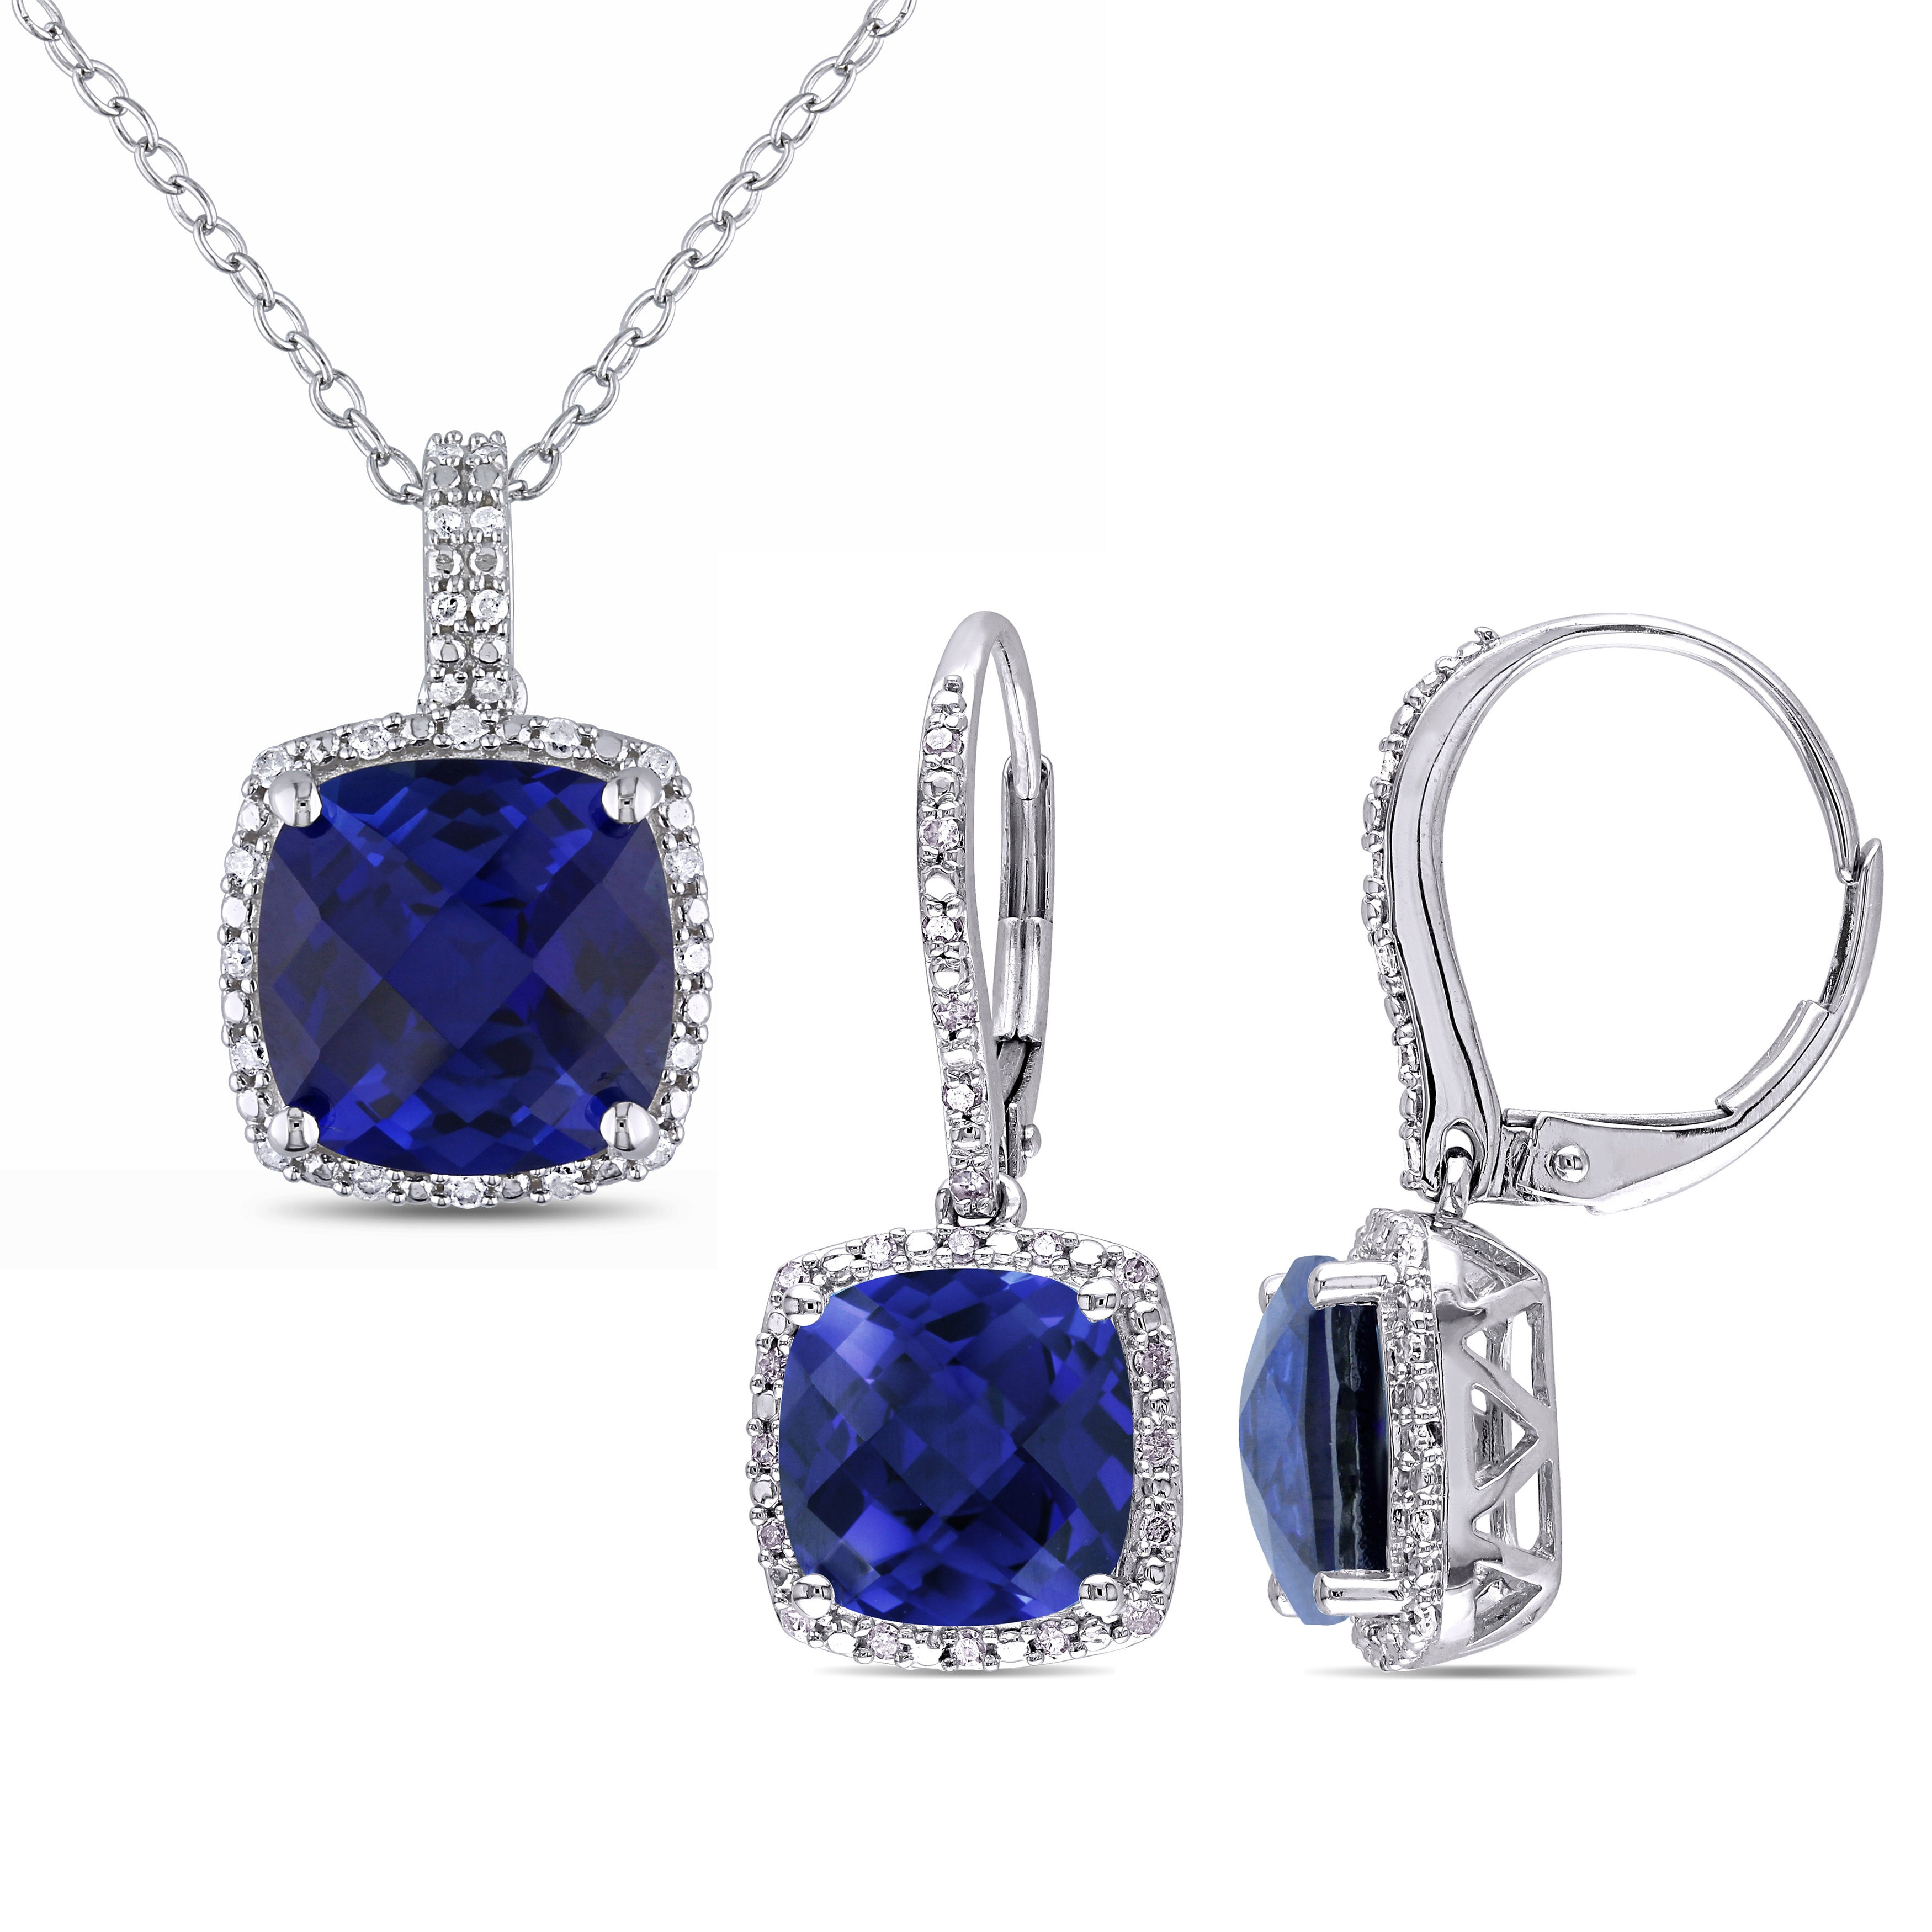 Miadora Sterling Silver Created Sapphire And 1/3Ct Tdw Diamond Square Halo  Necklace And Leverback Earrings Set – Blue For Current Square Sparkle Halo Necklaces (View 18 of 25)